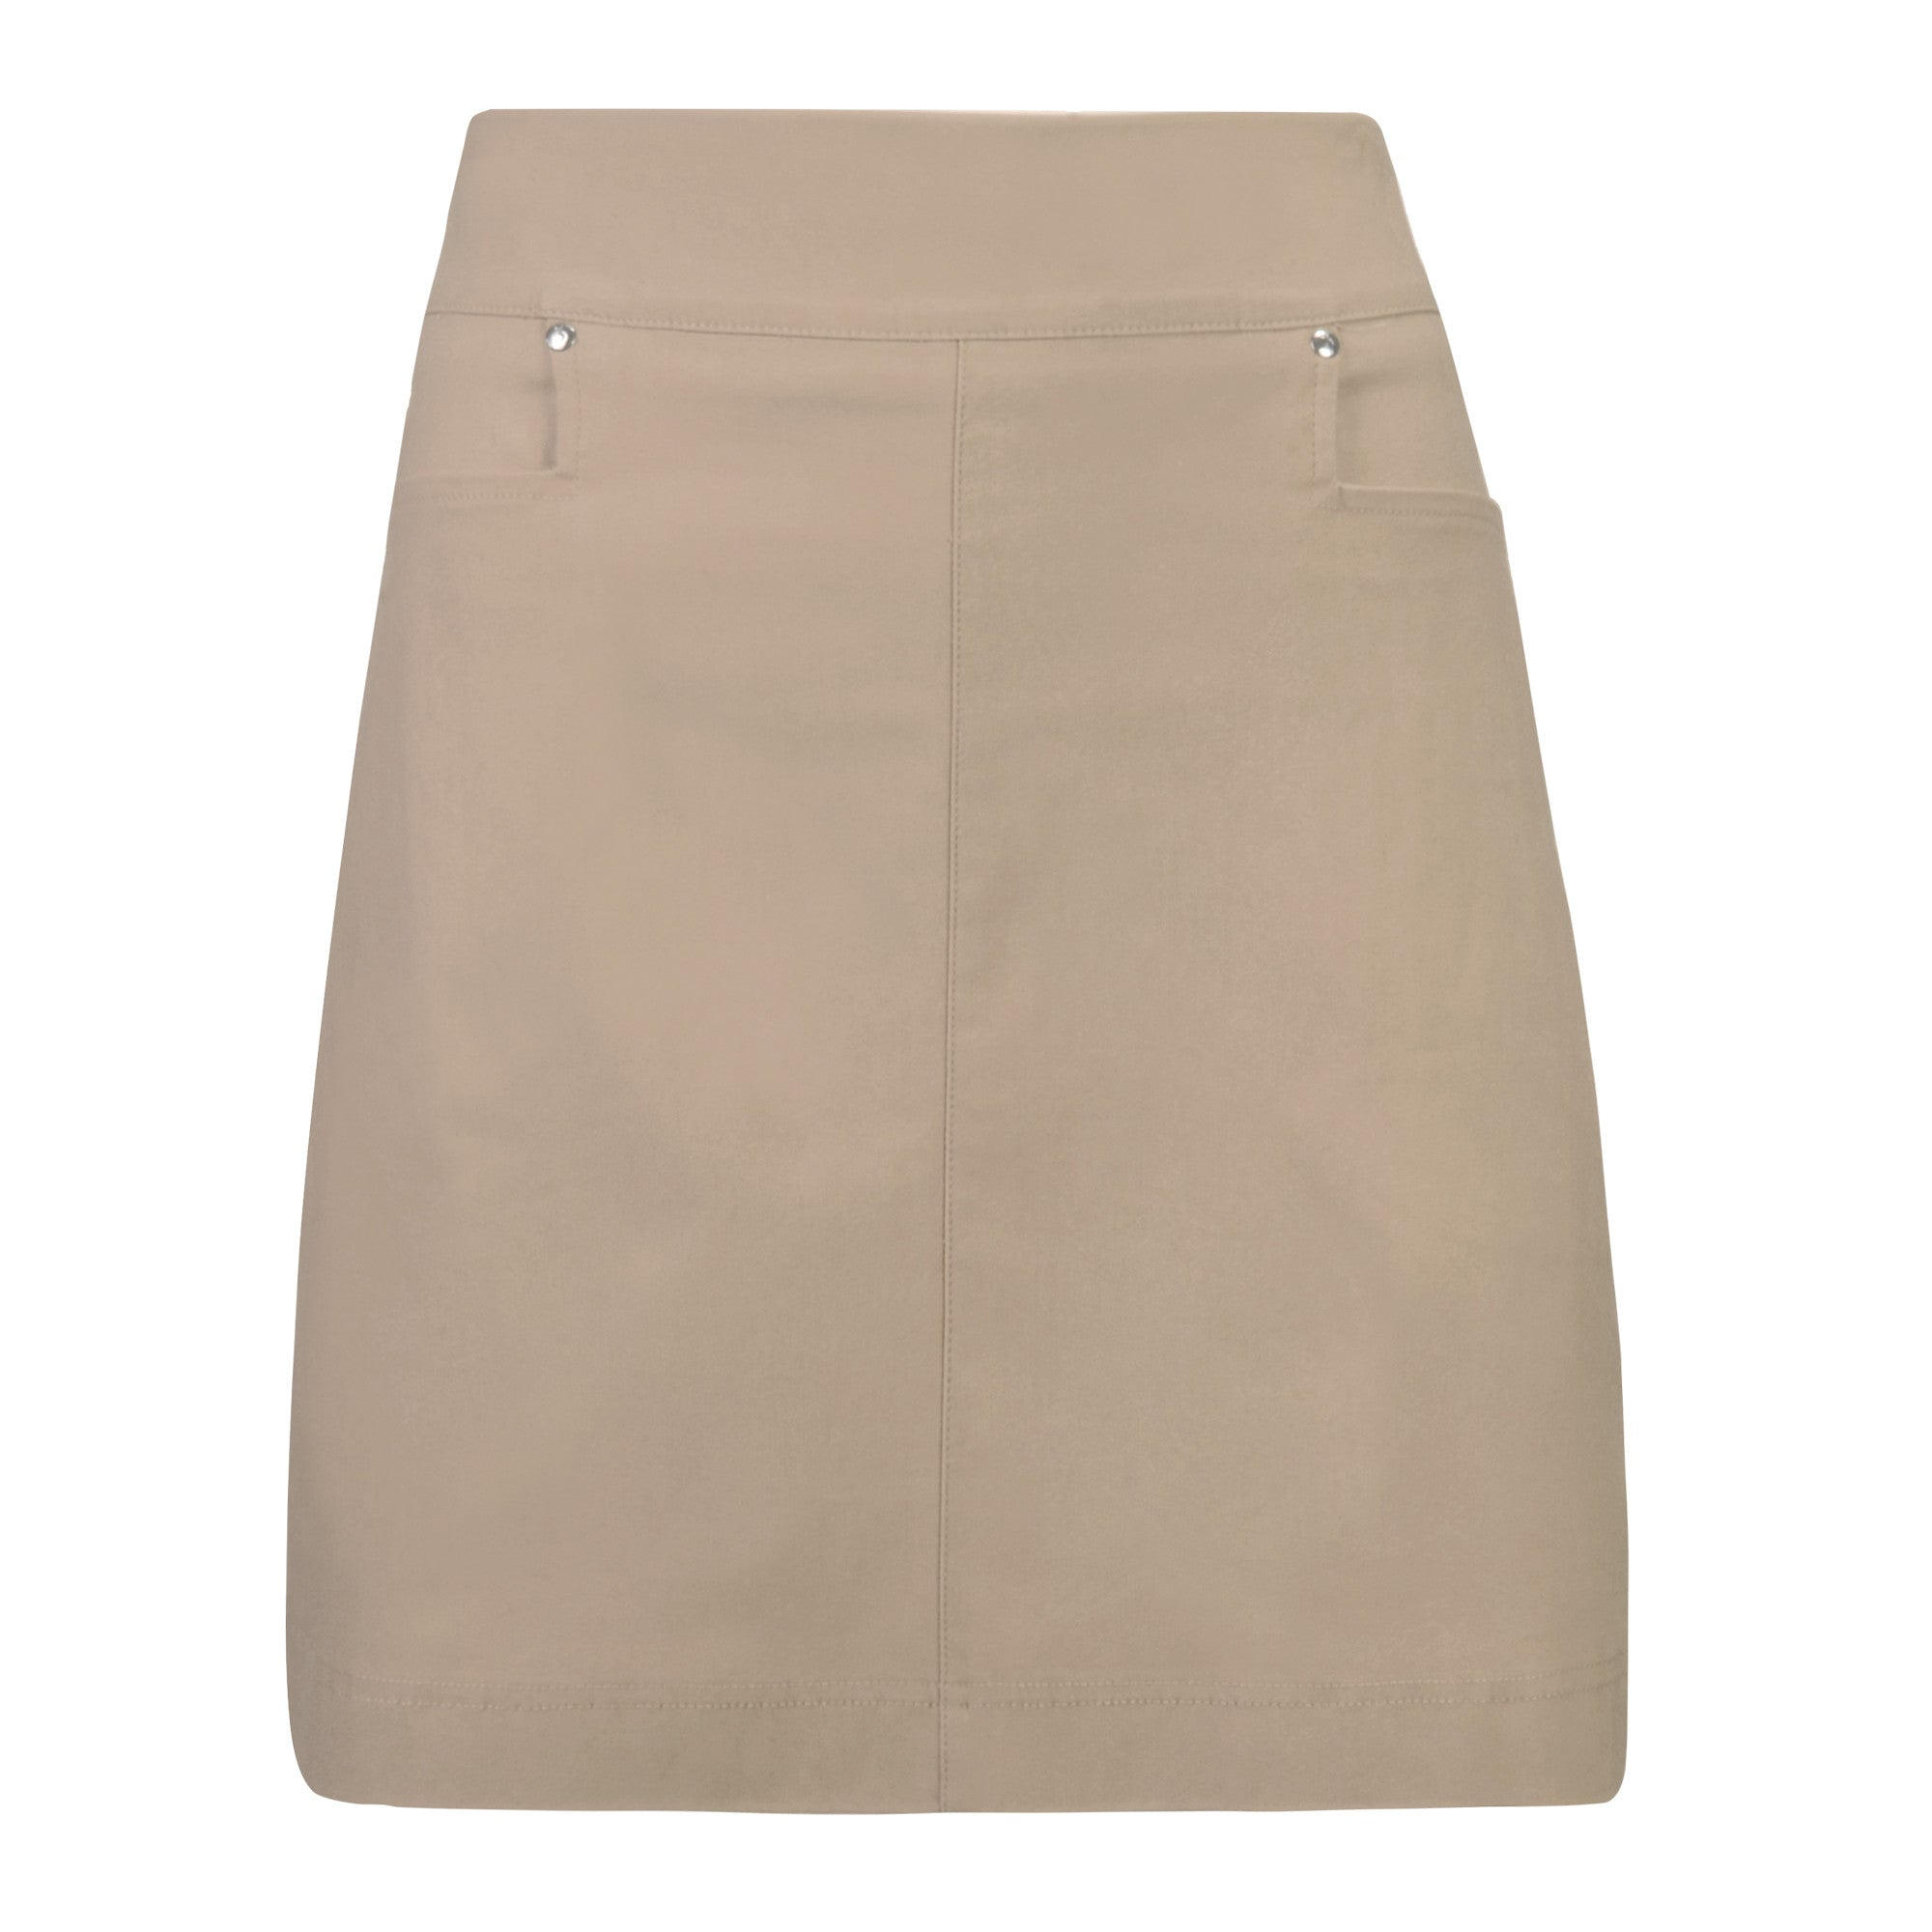 Nancy Lopez Pully Skort Khaki - L426901.23